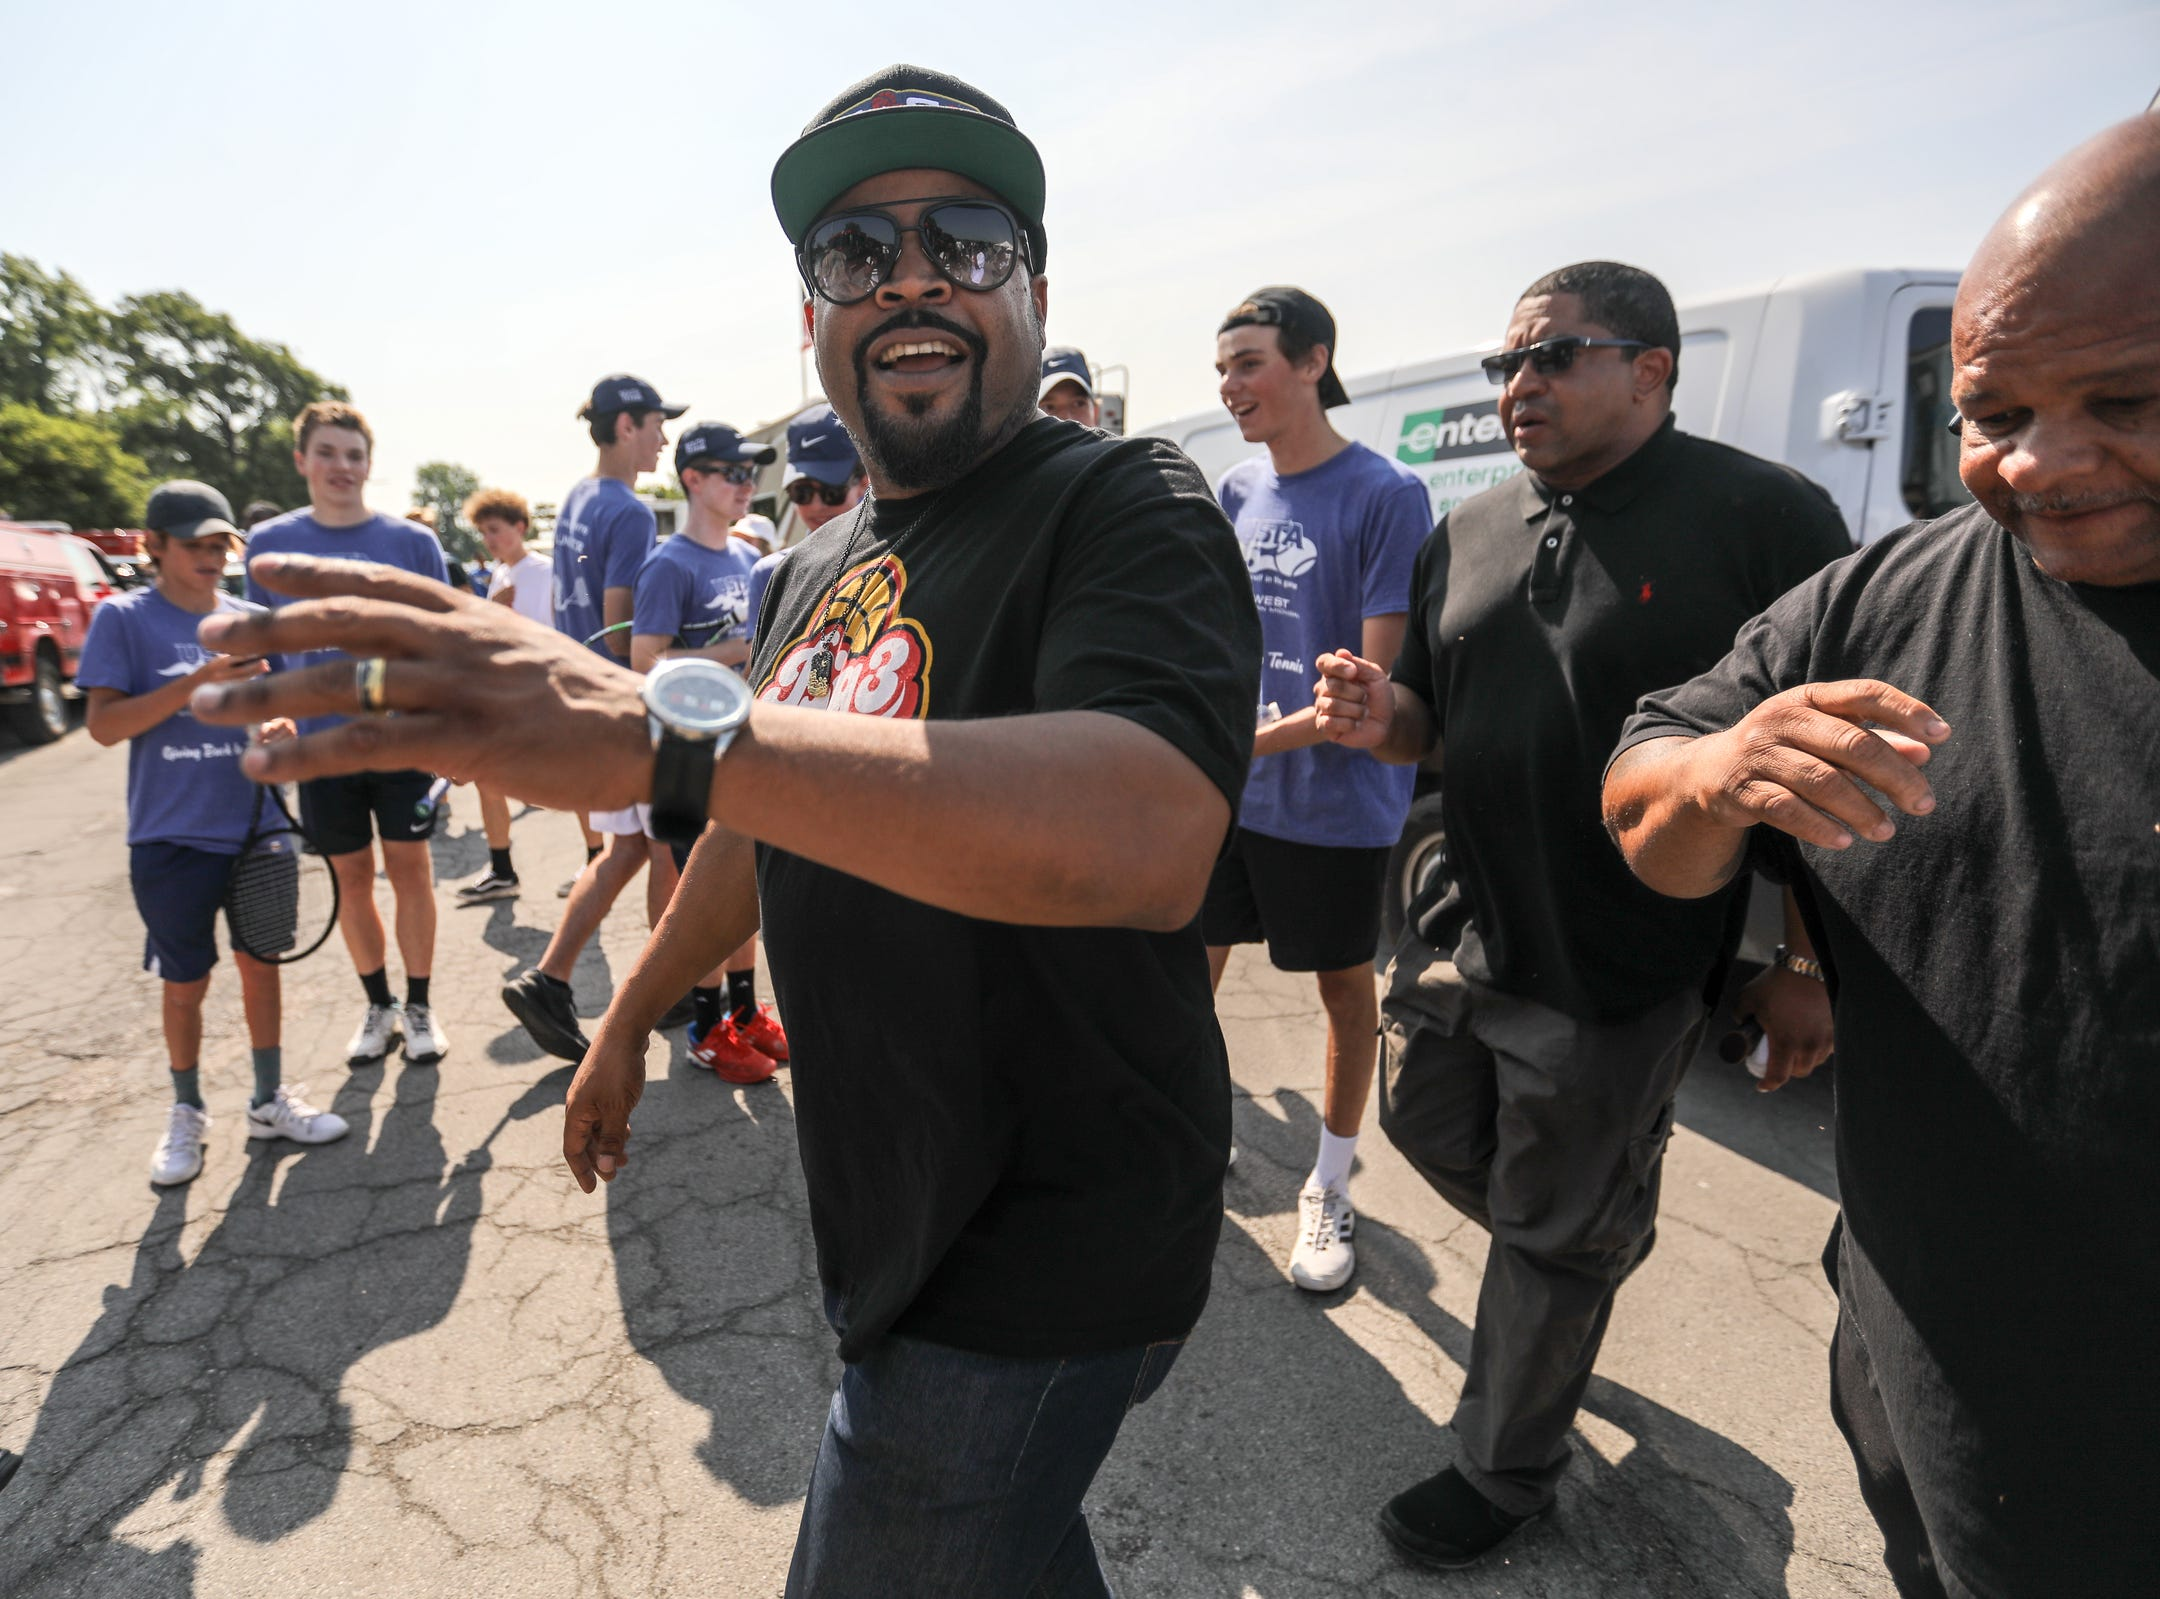 Entertainer Ice Cube makes an appearance during Metro Detroit Youth Day at Belle Isle in Detroit on Wednesday, July 11, 2018.